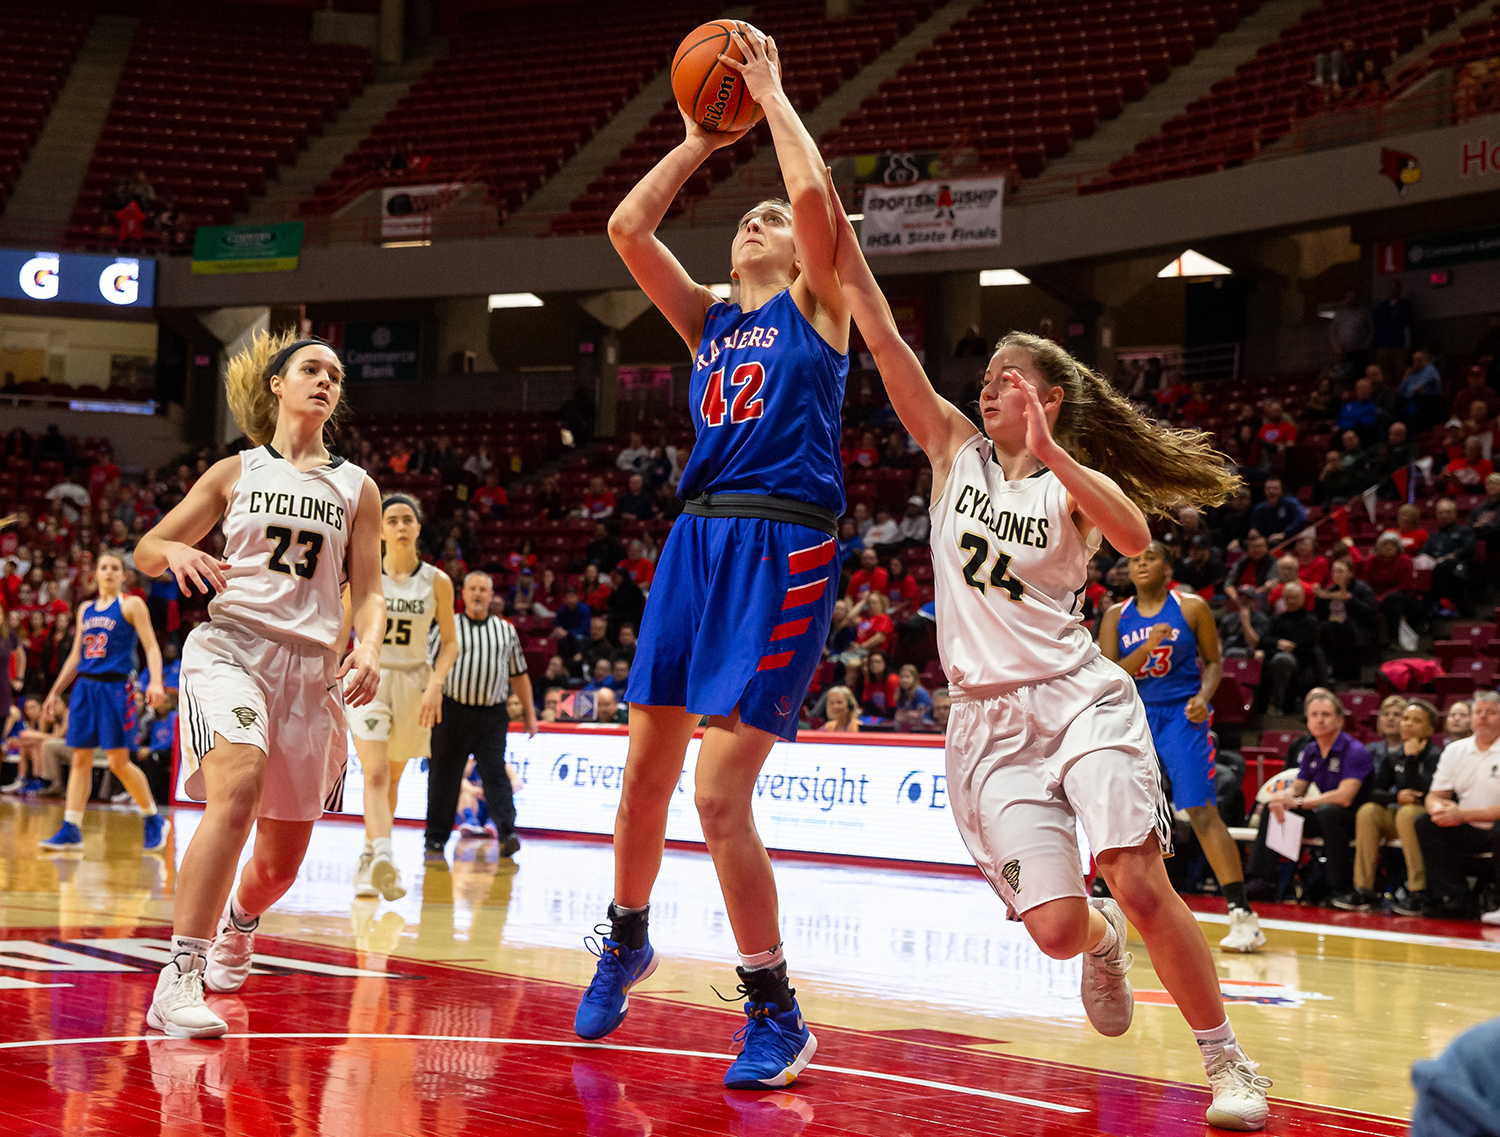 Glen Ellyn Glenbard South's Maggie Bair (42) goes up to the basket for a score against Sacred Heart-Griffin's Sofie Lowis (24) in the first quarter during the IHSA Class 3A State Tournament semifinals at Redbird Arena, Friday, March 1, 2019, in Normal, Ill. [Justin L. Fowler/The State Journal-Register]